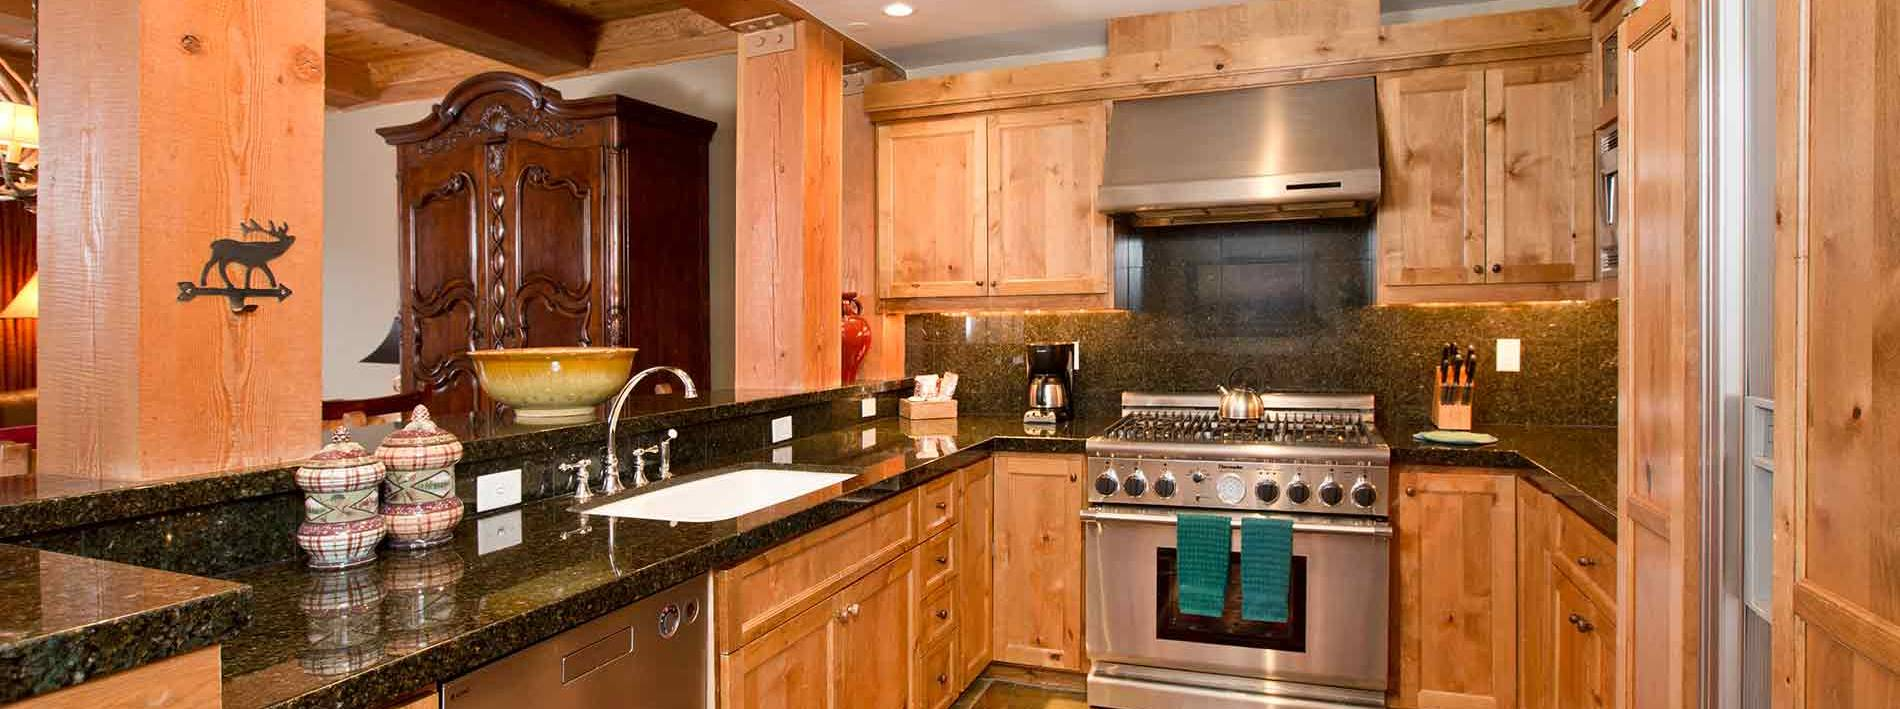 Spacious kitchen in this Jackson Hole private home rental